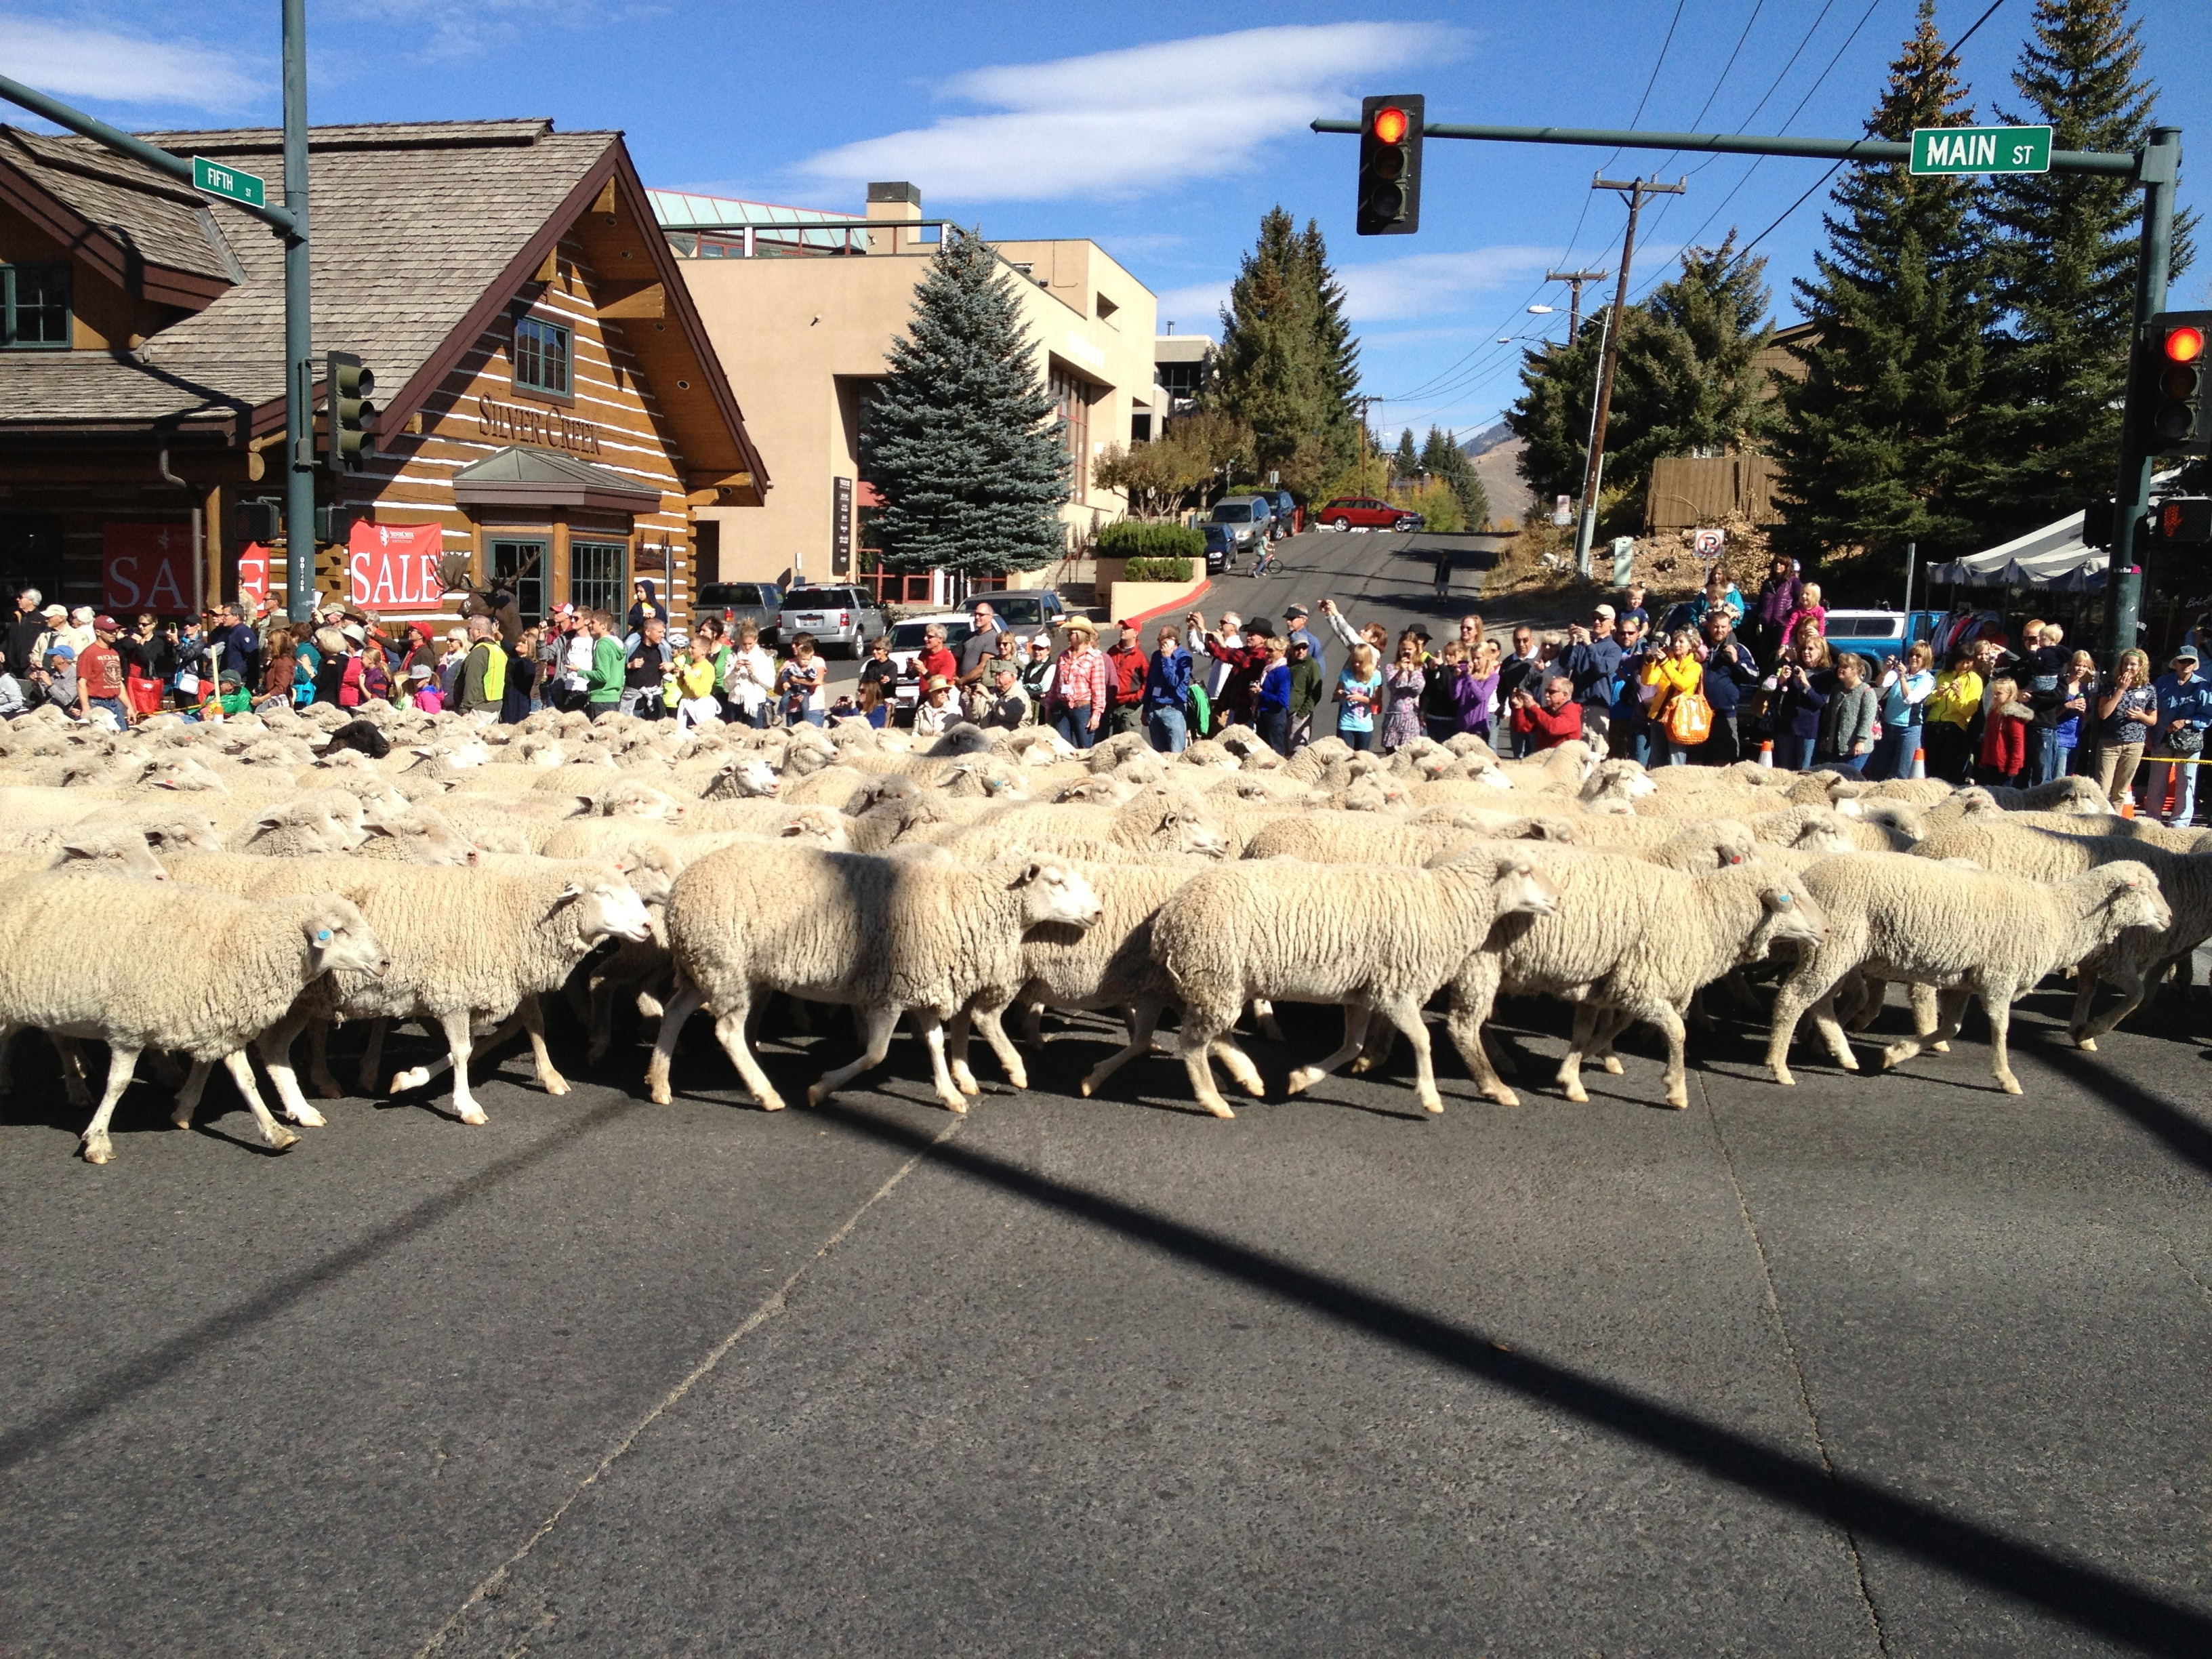 The Trailing of the Sheep